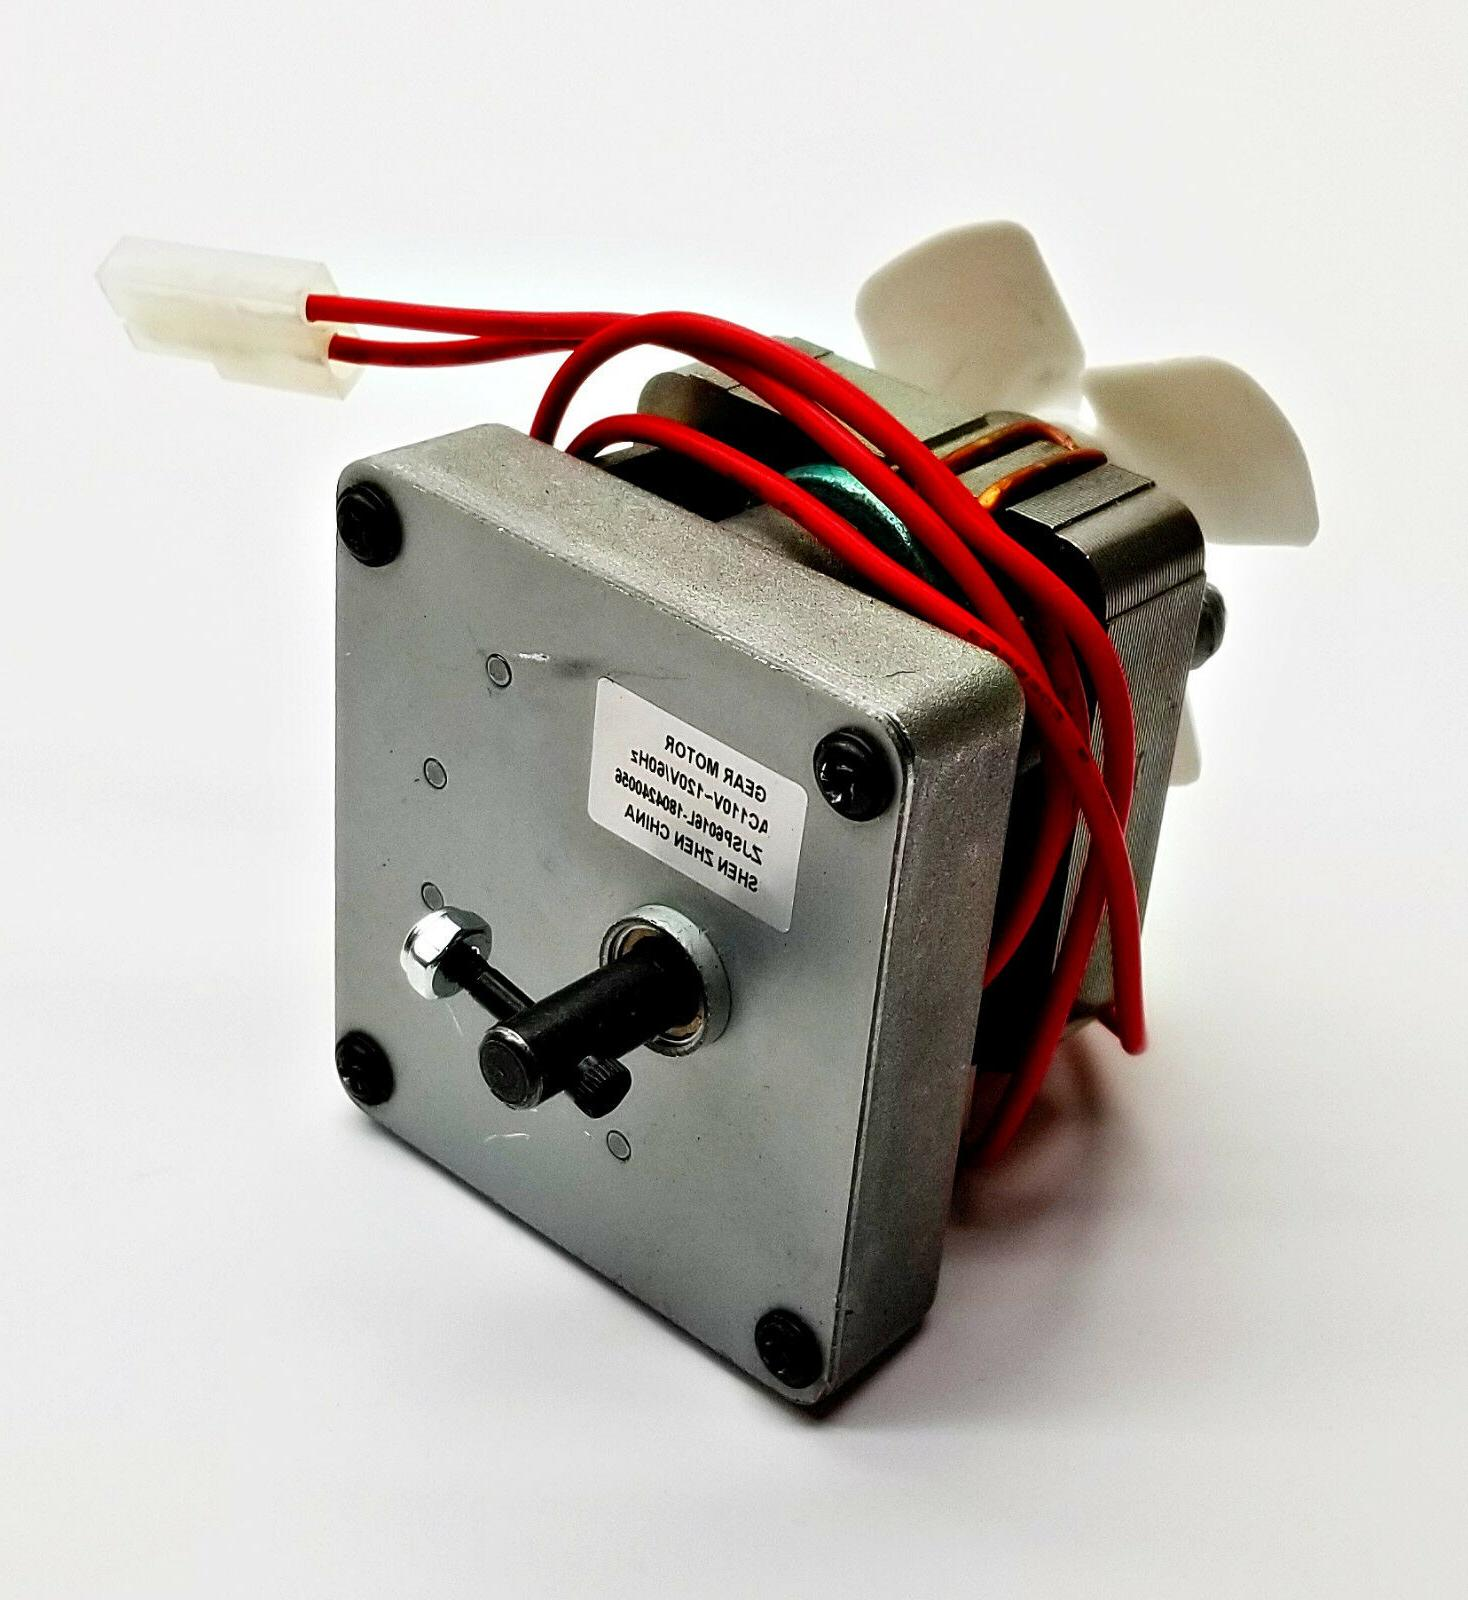 Auger Feed Fuel Motor for Camp Chef Electric Wood Pellet Smo